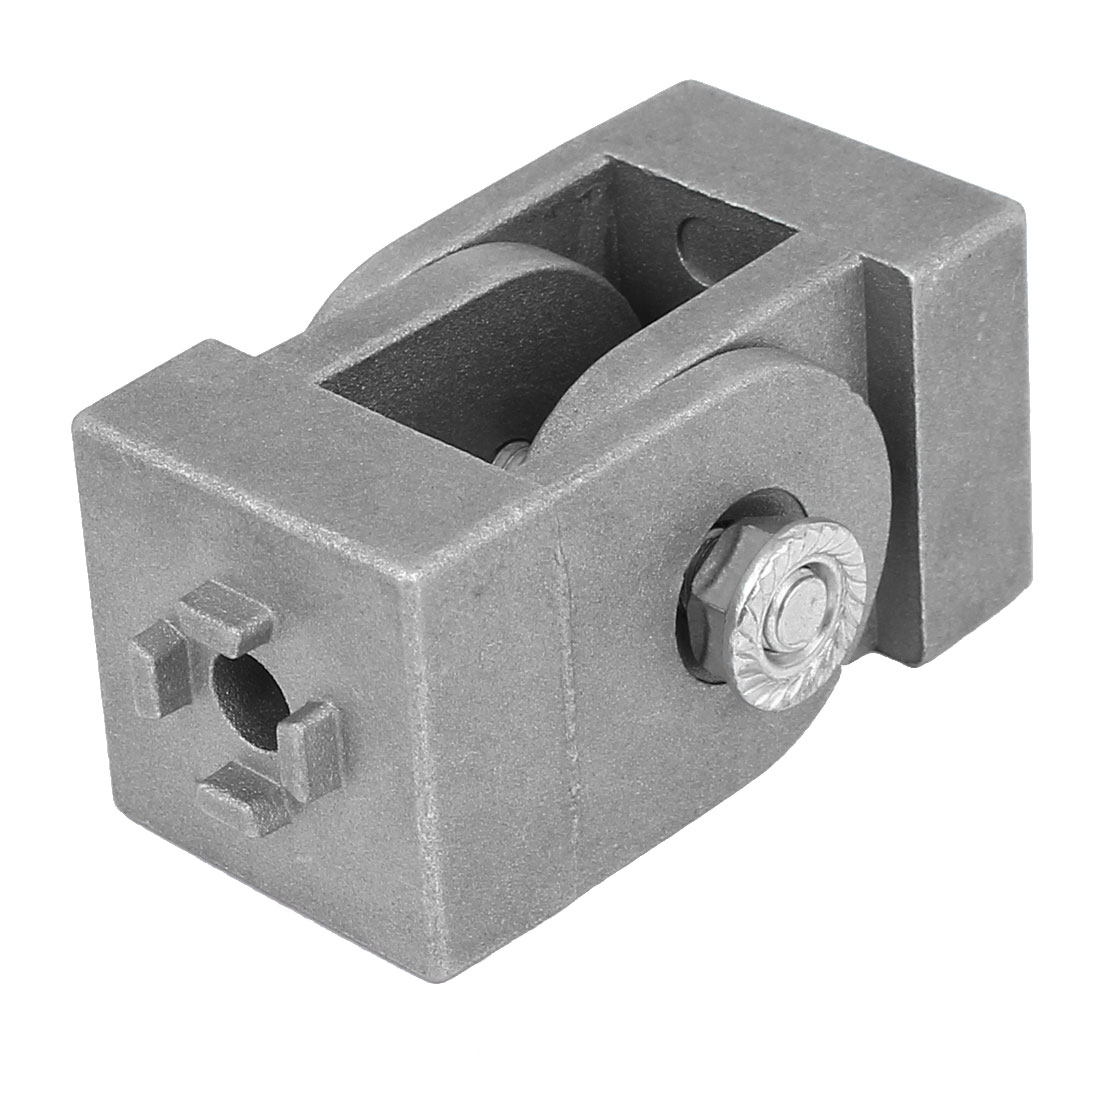 Metal Angle Connector Arbitrary Coupling Movable Living Hinge Joint Axis